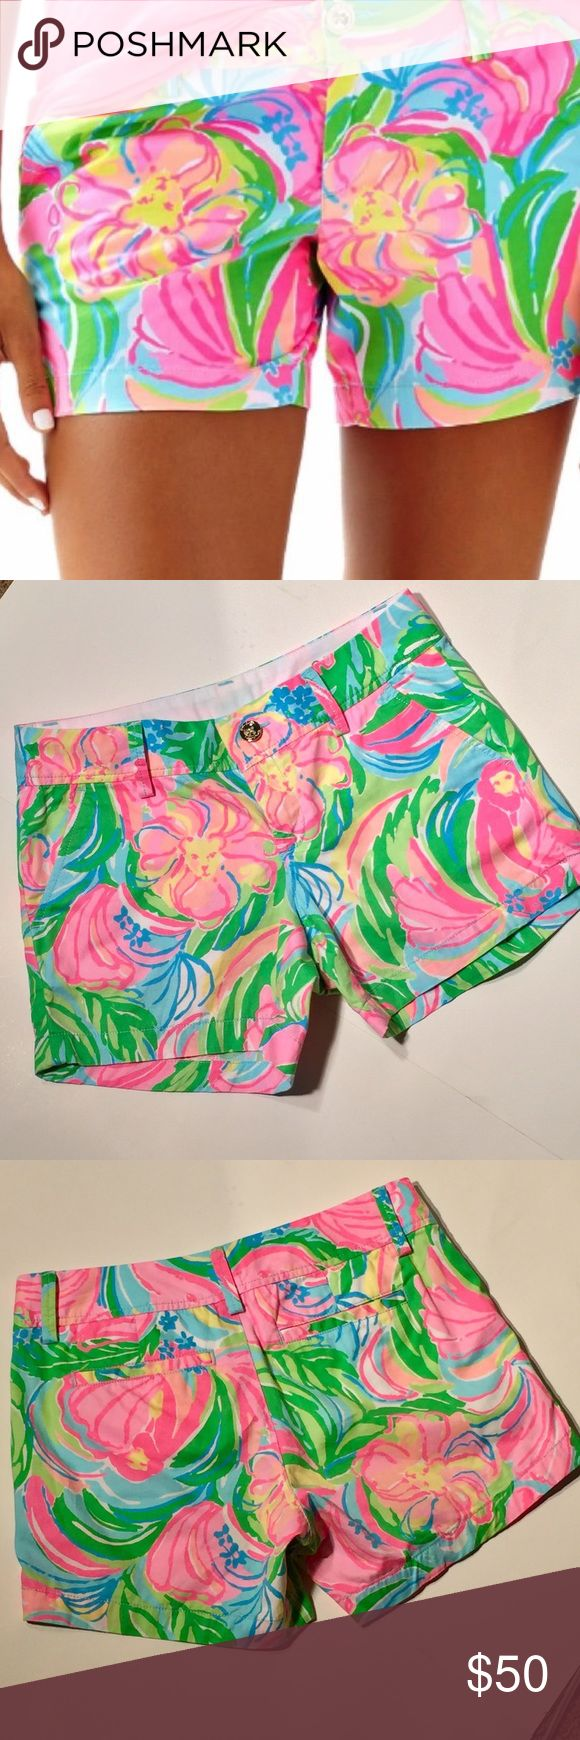 "Lilly pulitzer Callahan shorts Callahan shorts has flawless fit, The unique beach Twill fabric observes color and displays print beautifully. 5 inch inseam zip fly short with center front button closure. Belt loops slant front pockets and back welt pocket.                                         print in Multi ""So-A-Peeling"" size 2 EUC Lilly Pulitzer Shorts"